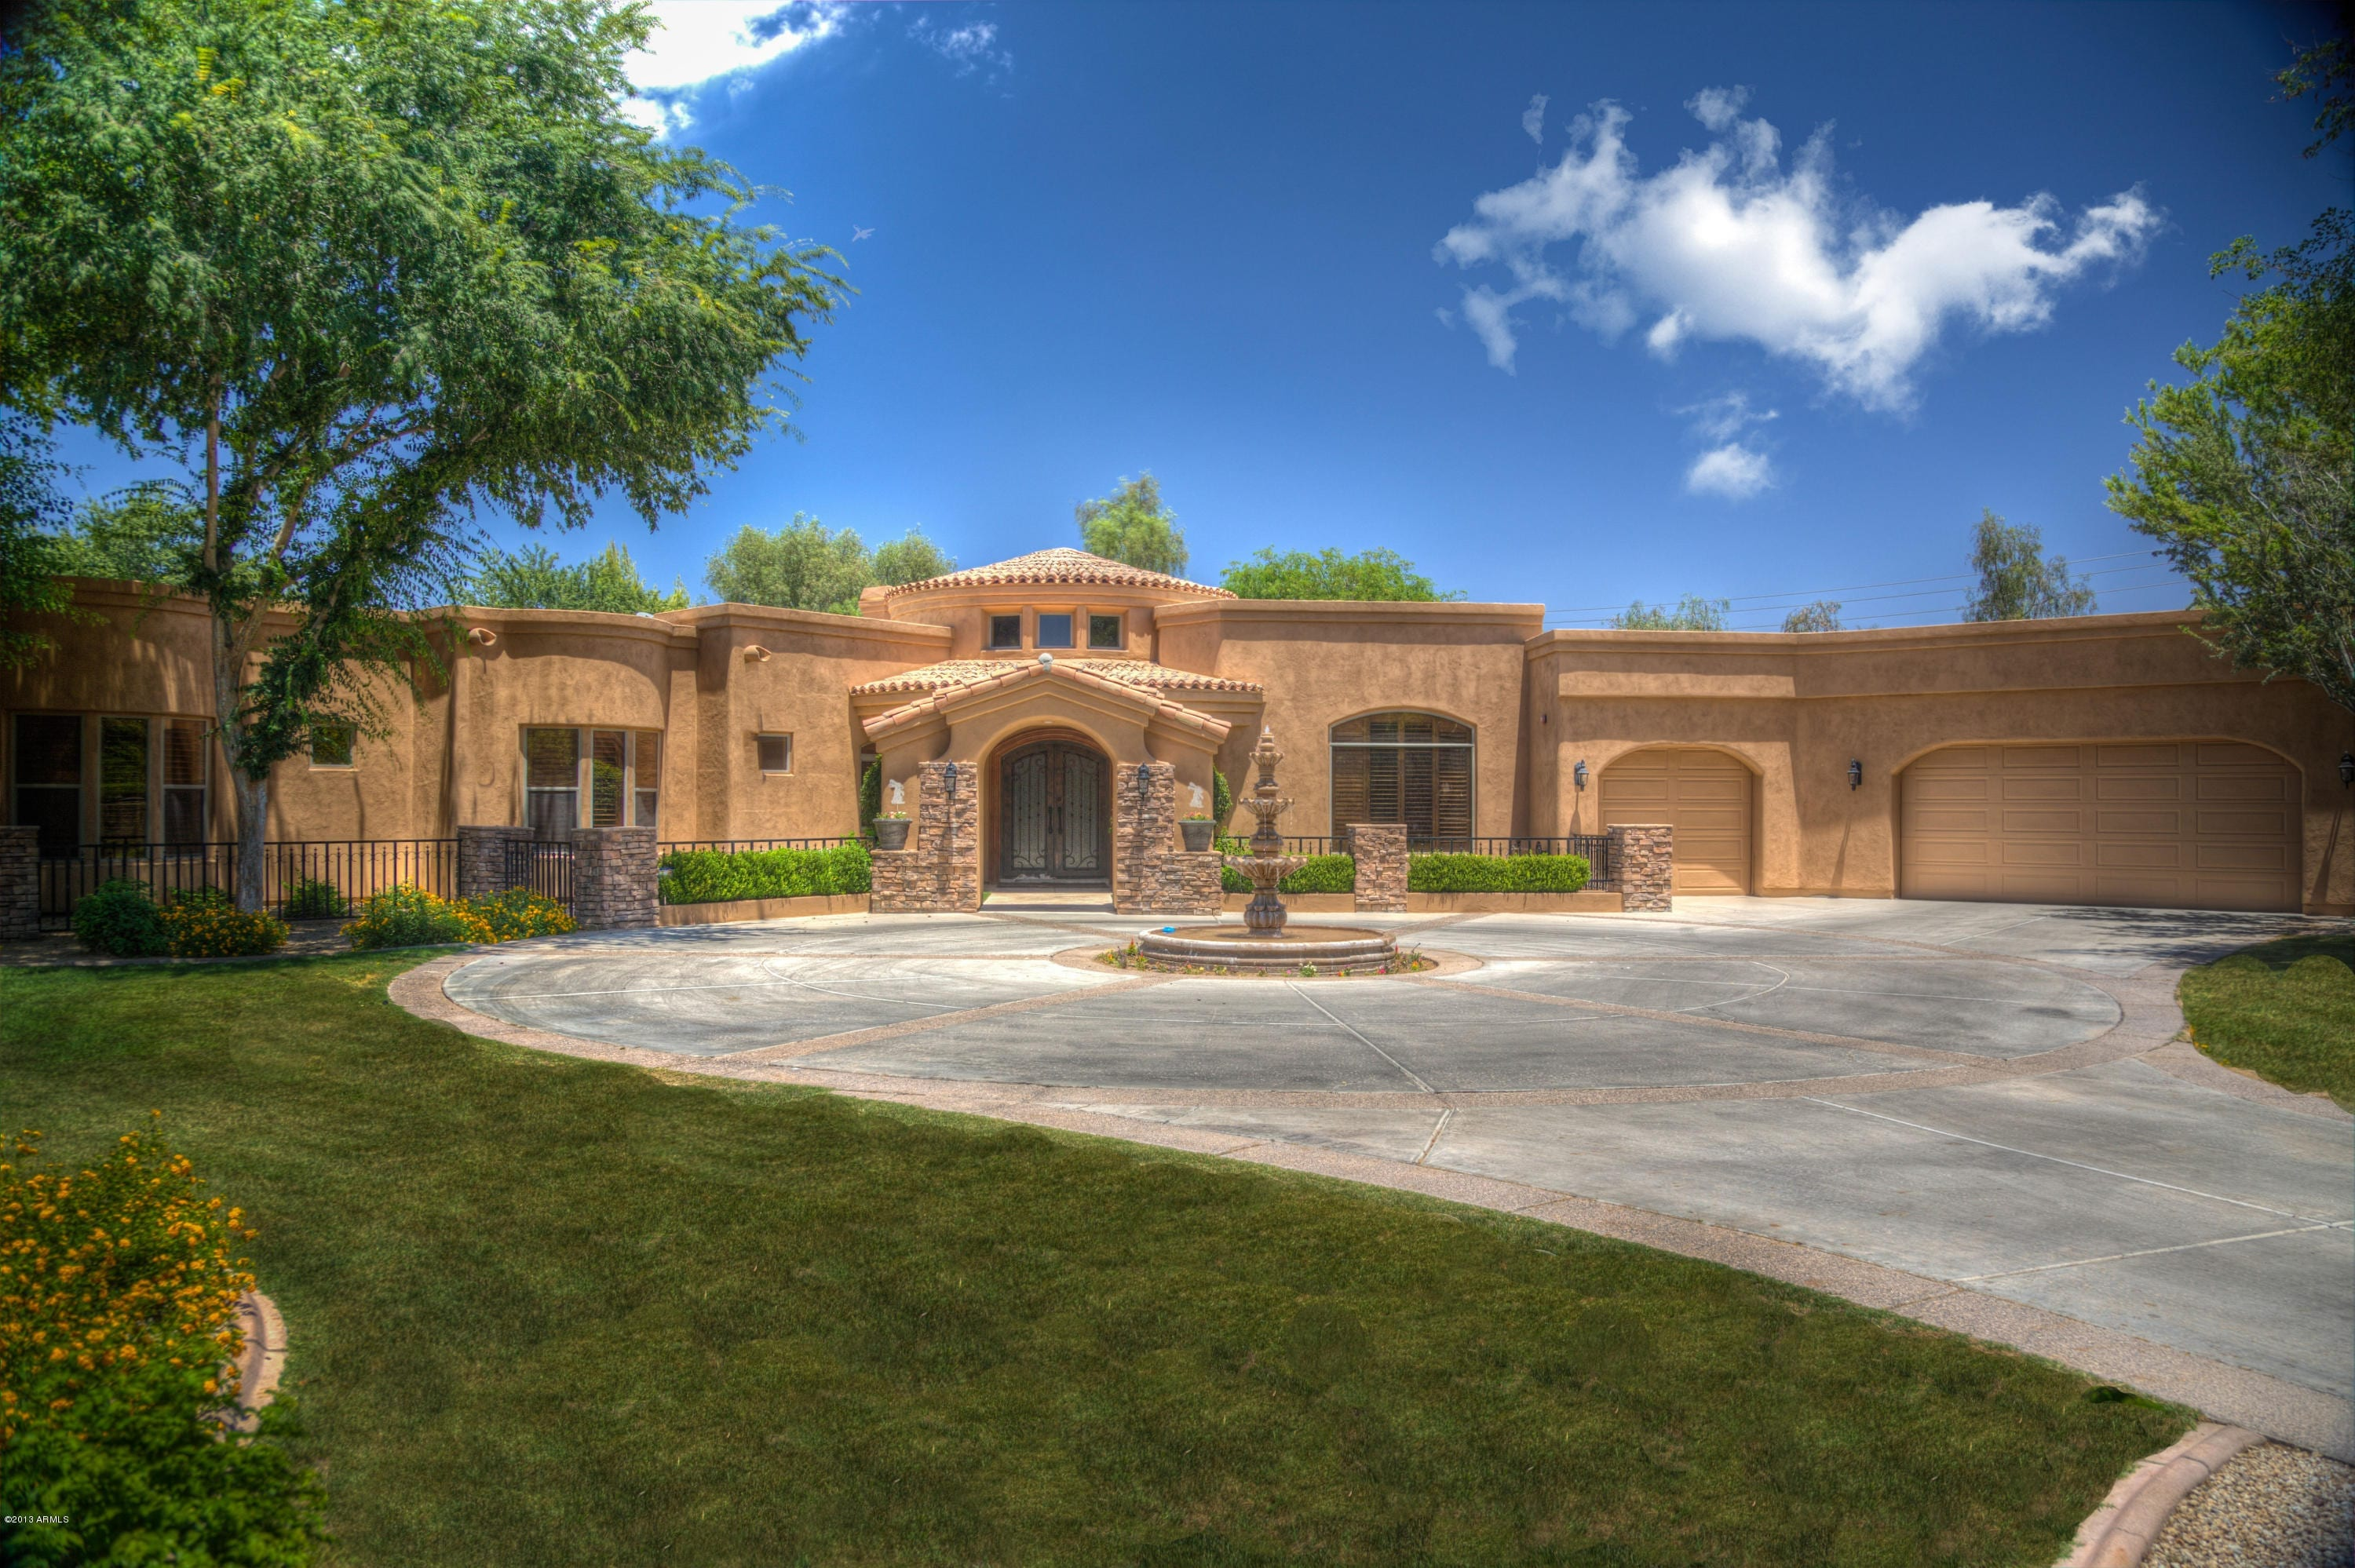 Houses for sale in scottsdale arizona scottsdale real for Mansions for sale in scottsdale az